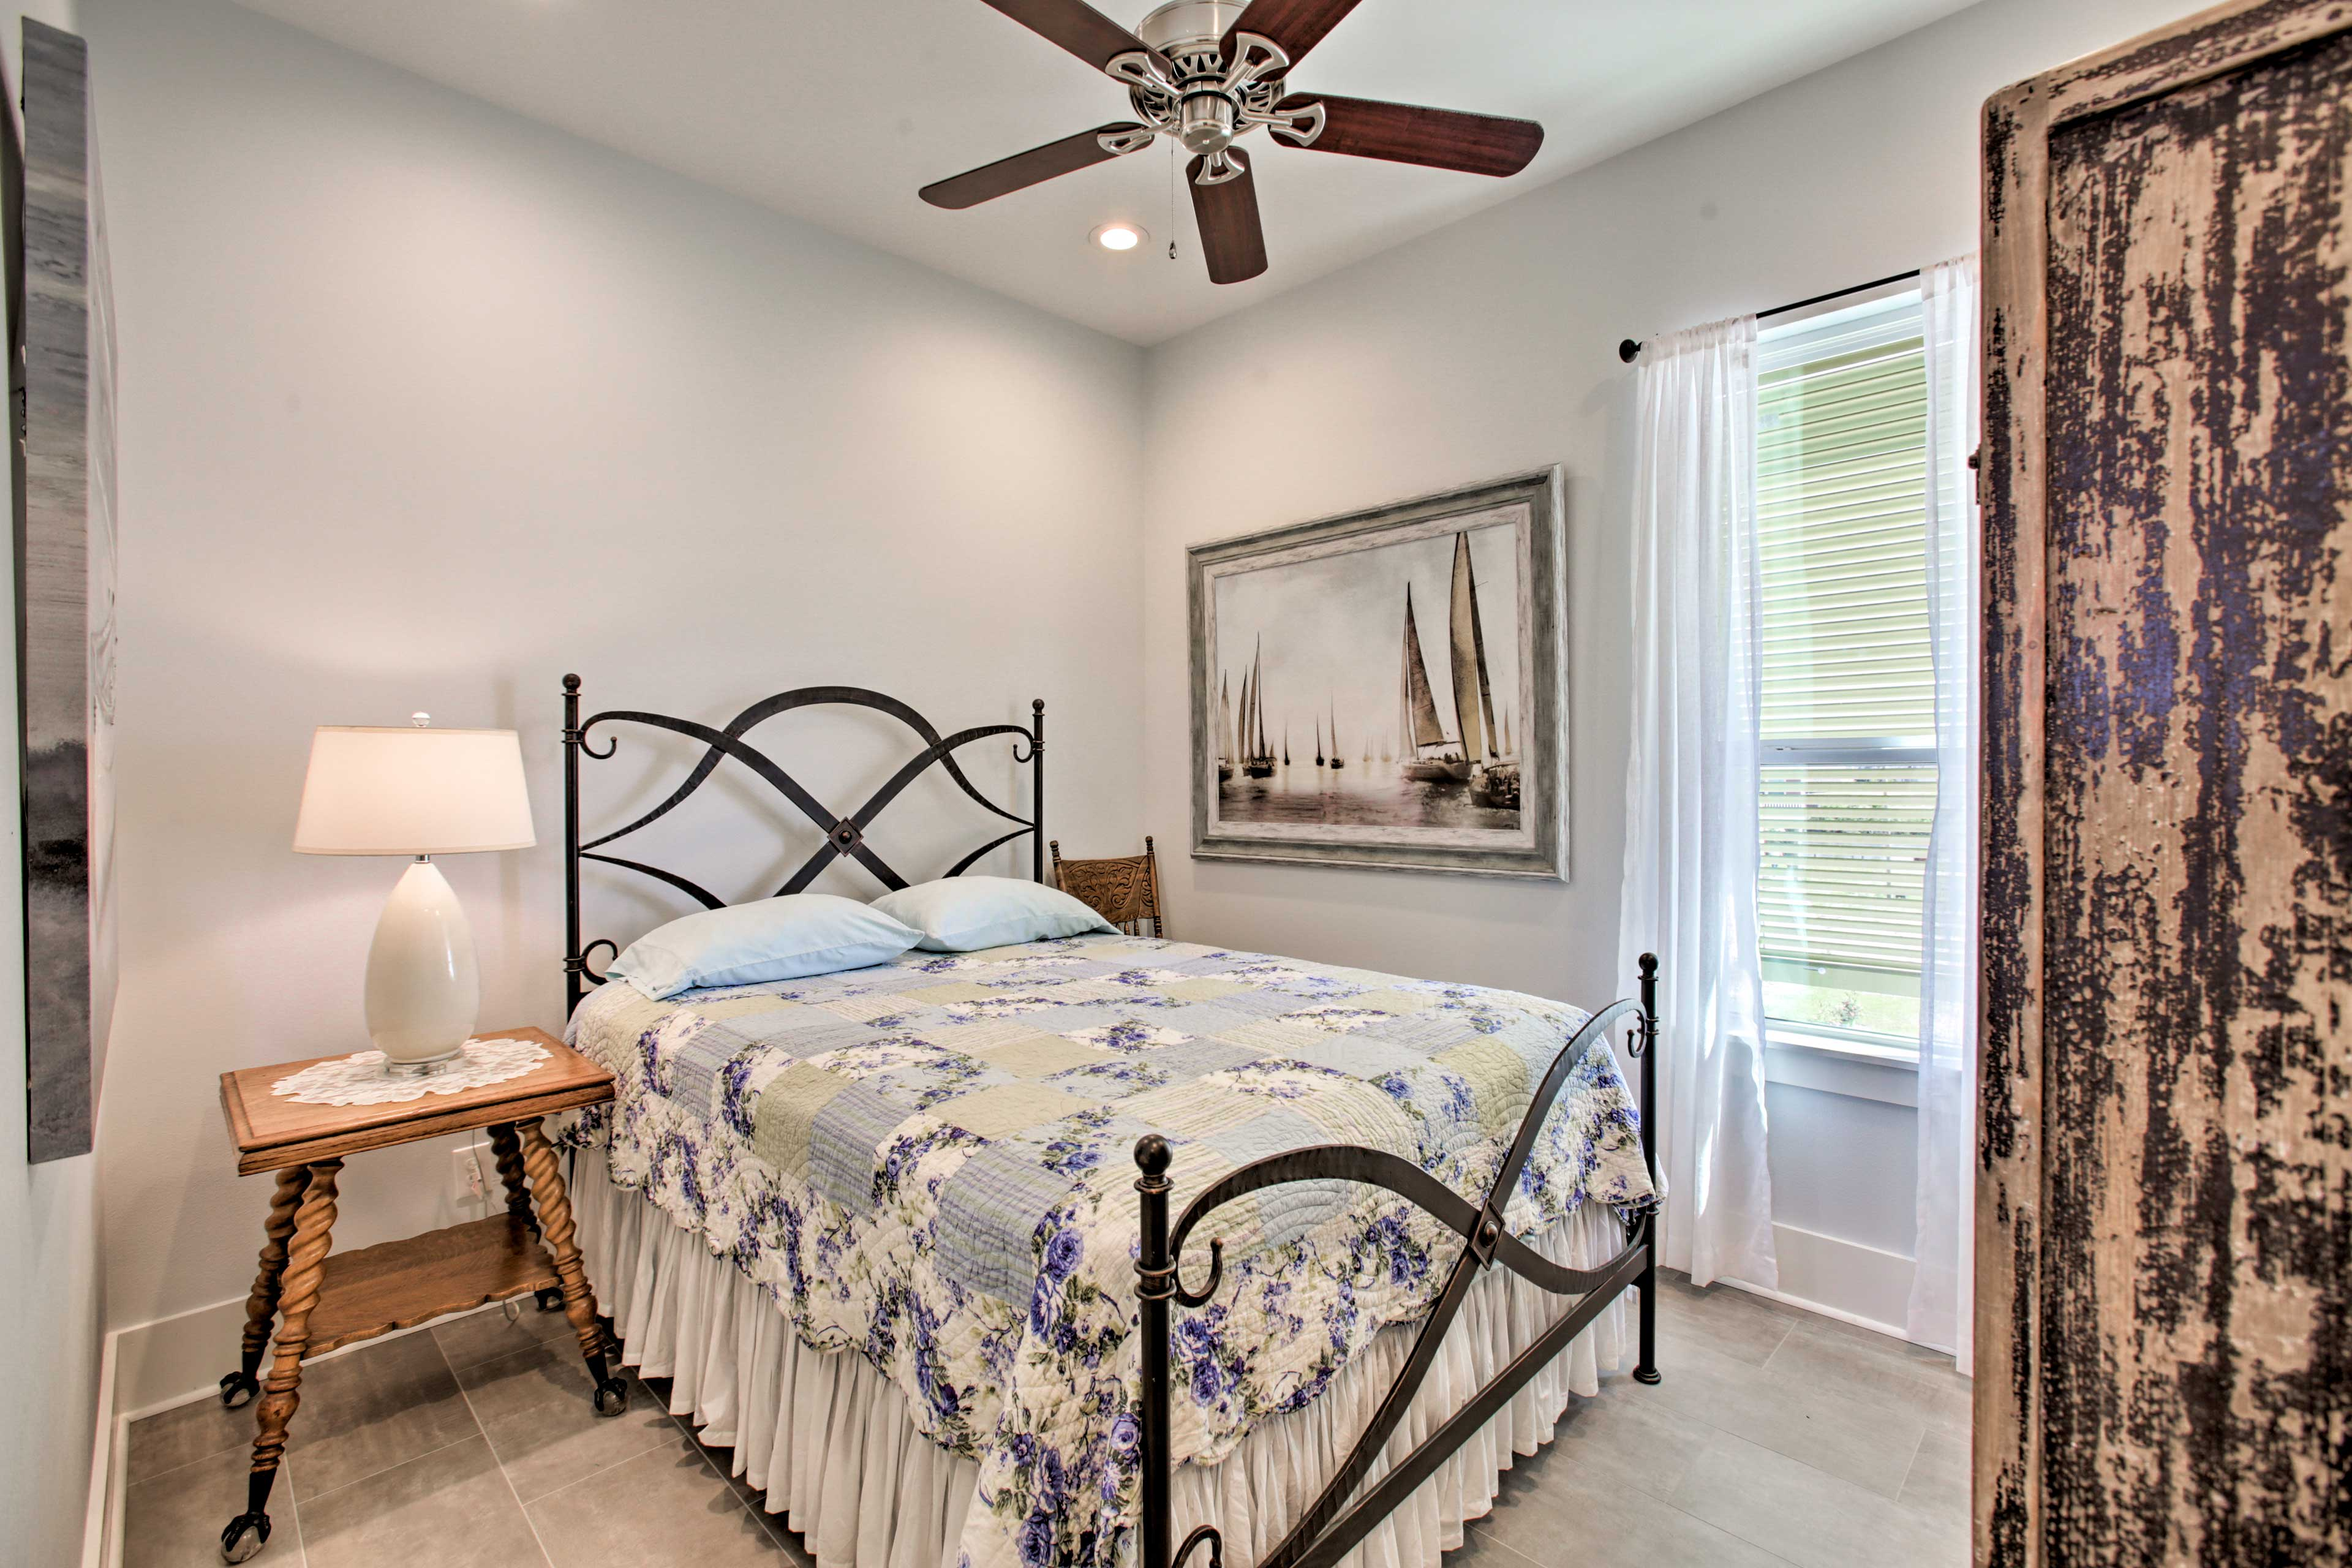 The second bedroom features a queen bed to sleep up to 2 guests.